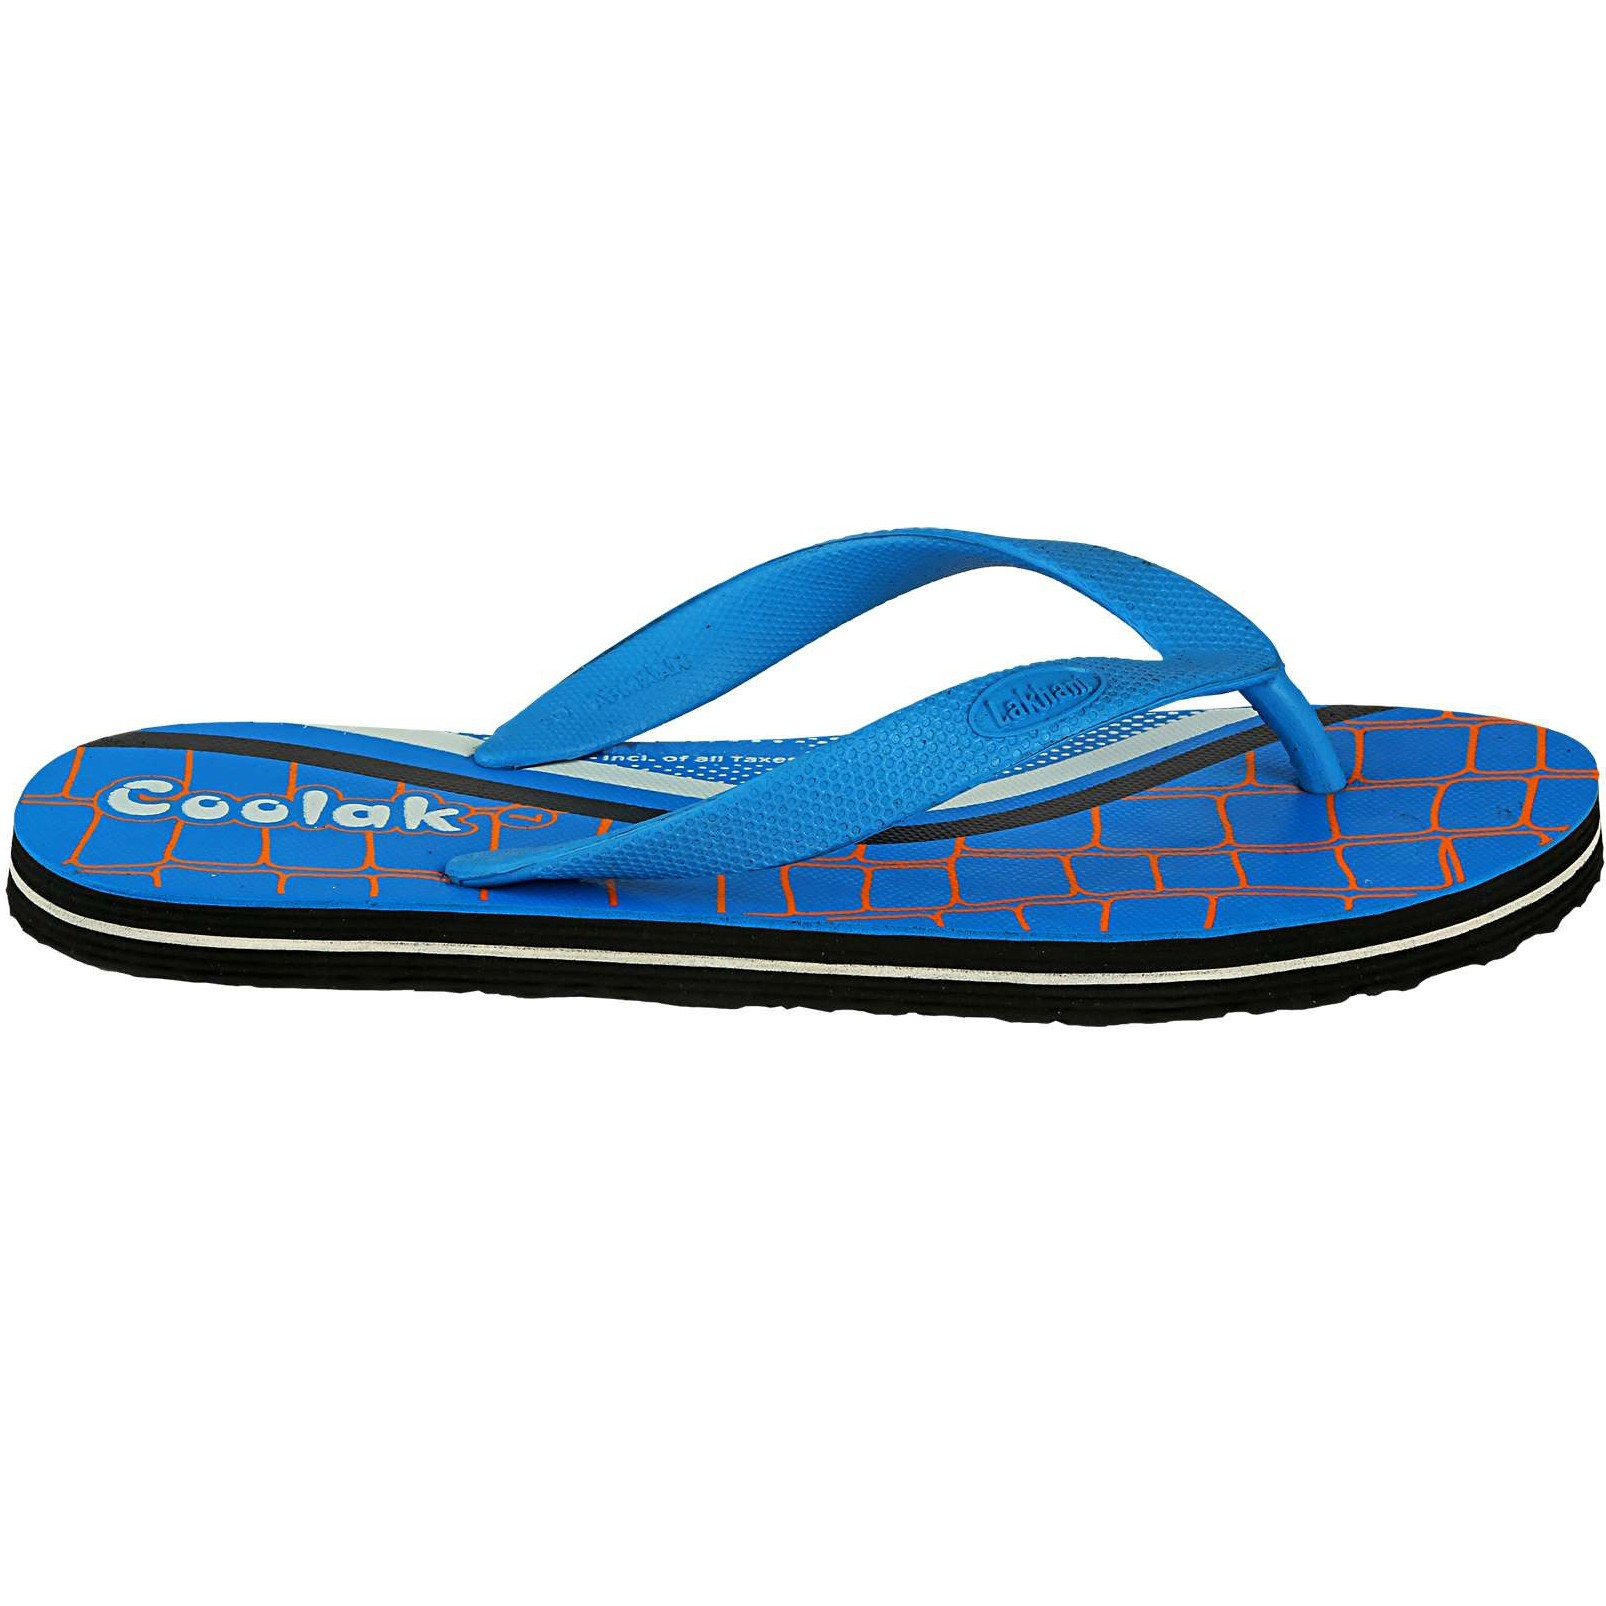 COOLAK HAWAI 611 SEABLUE BLACK